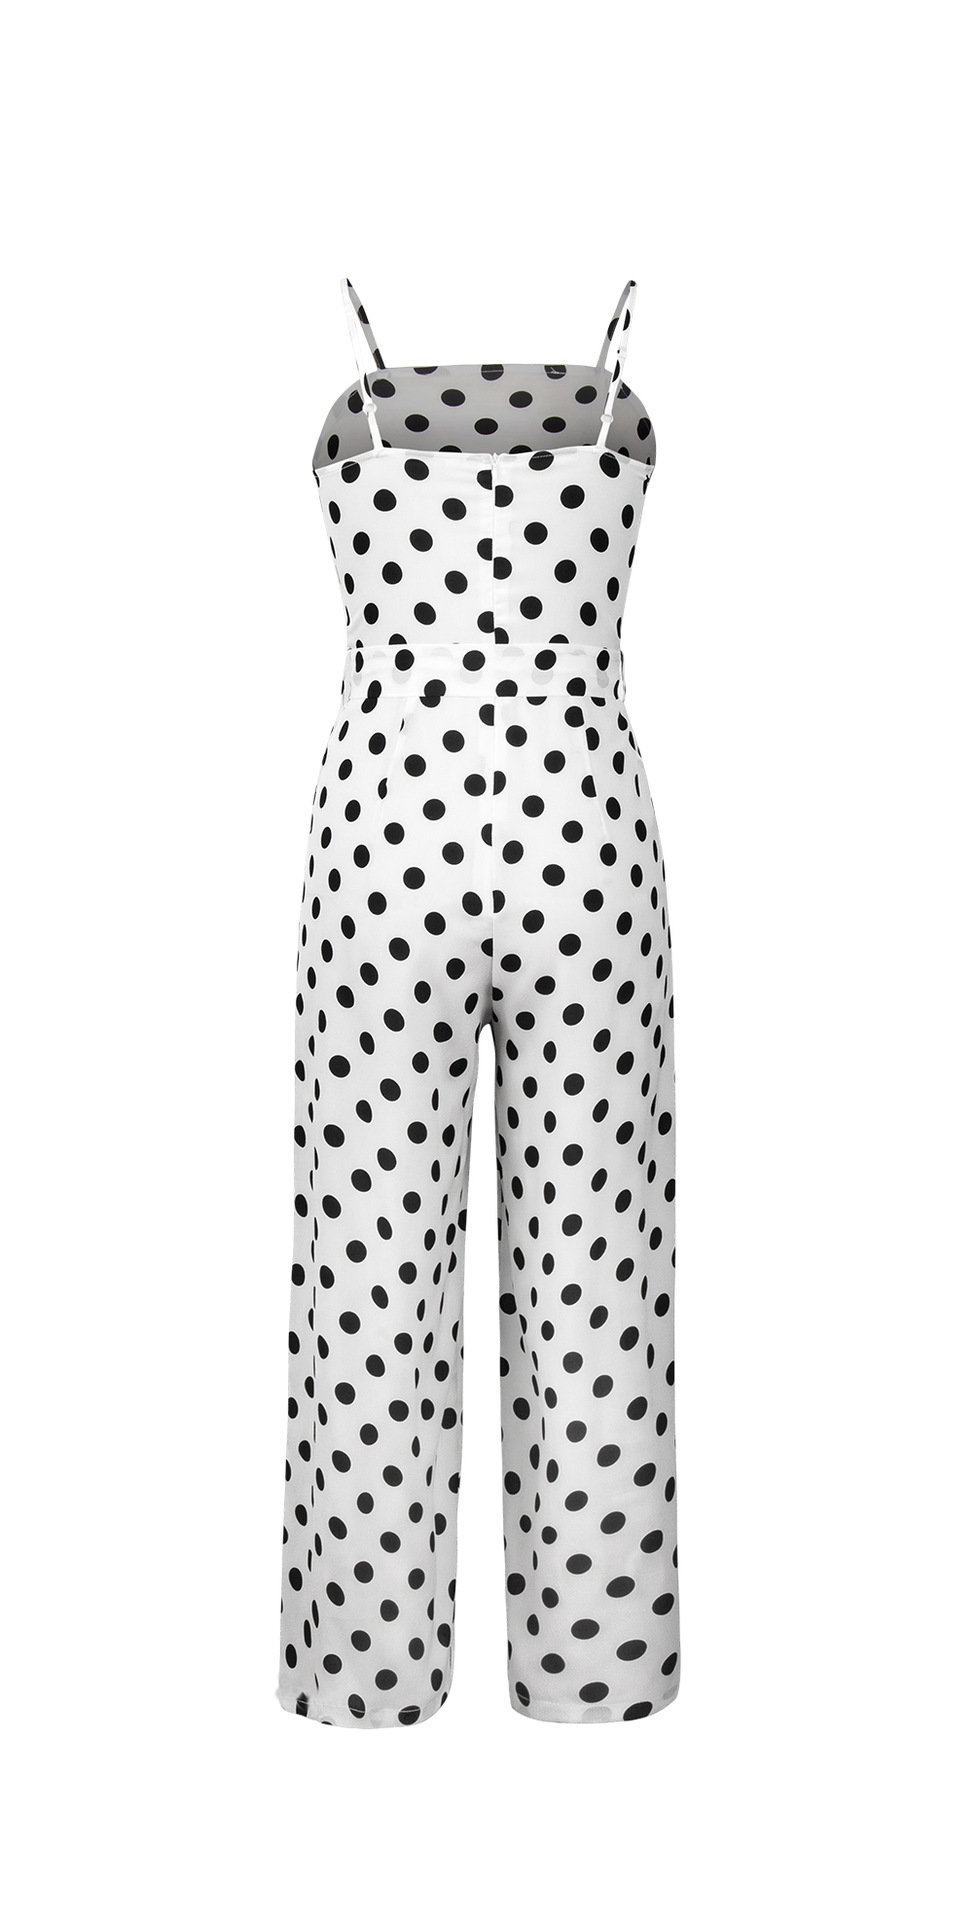 HTB1XG7LbjvuK1Rjy0Faq6x2aVXa7 - Women Rompers summer long pants elegant strap woman jumpsuits polka dot plus size jumpsuit off shoulder overalls for womens